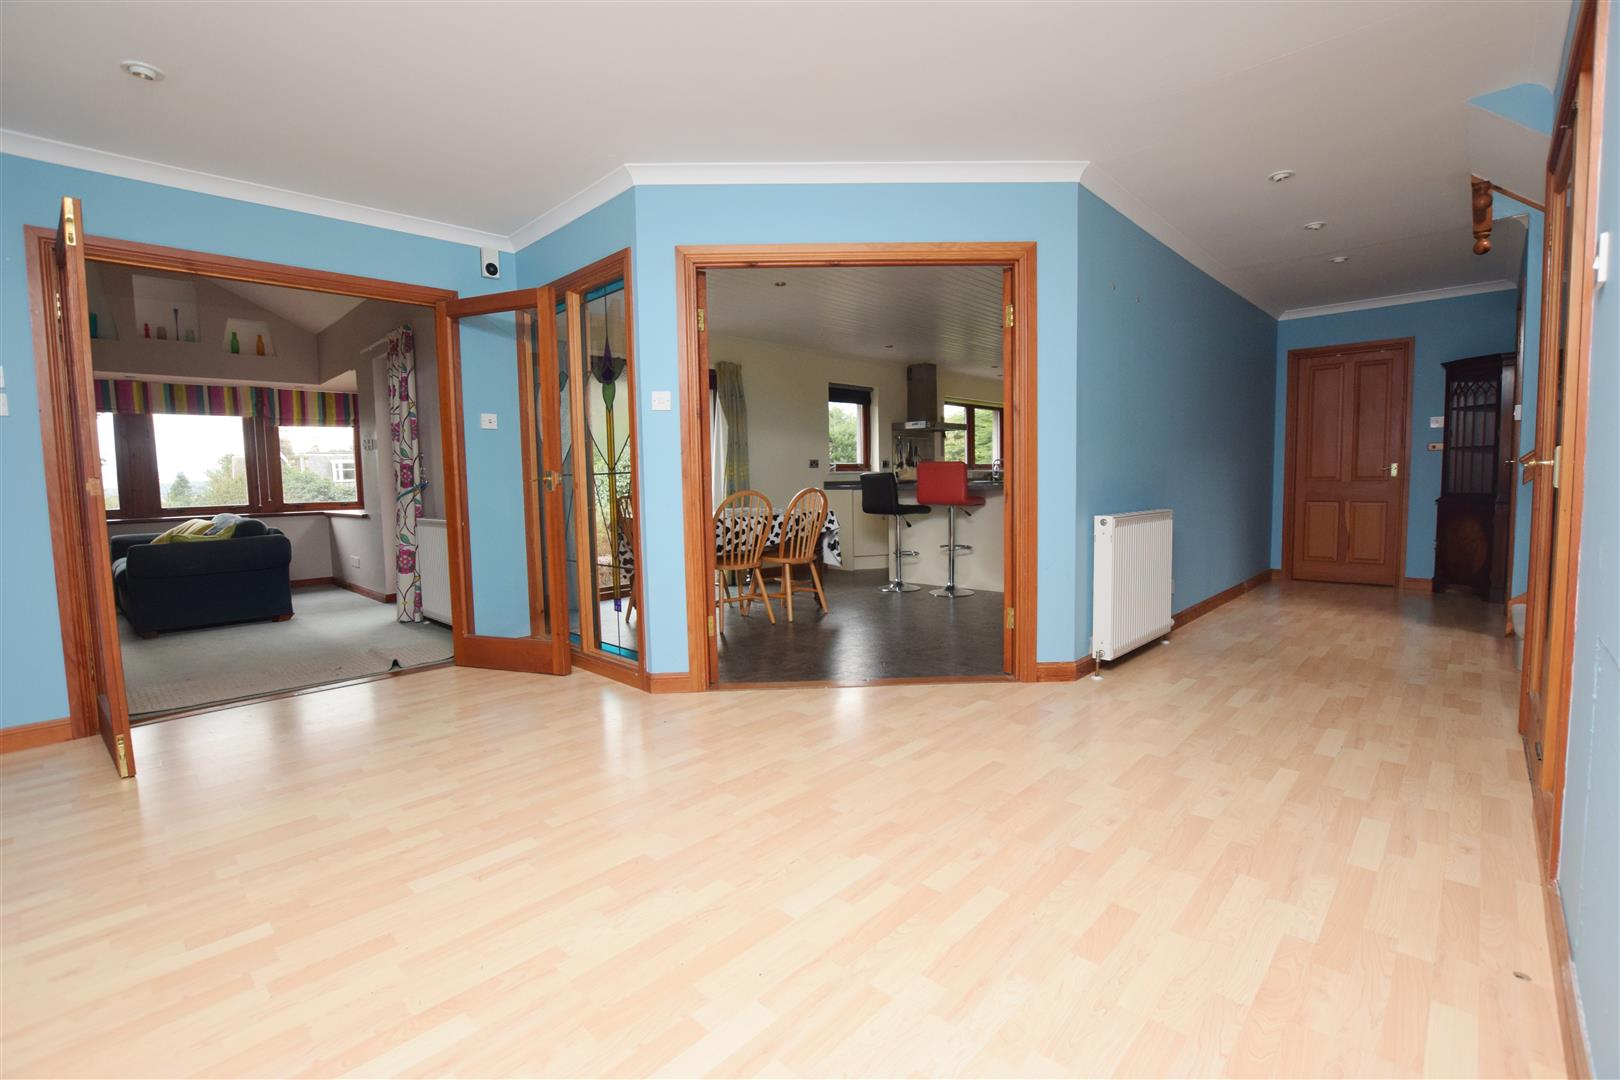 Highclere, Ancaster Road, Crieff, Perthshire, PH7 4AL, UK